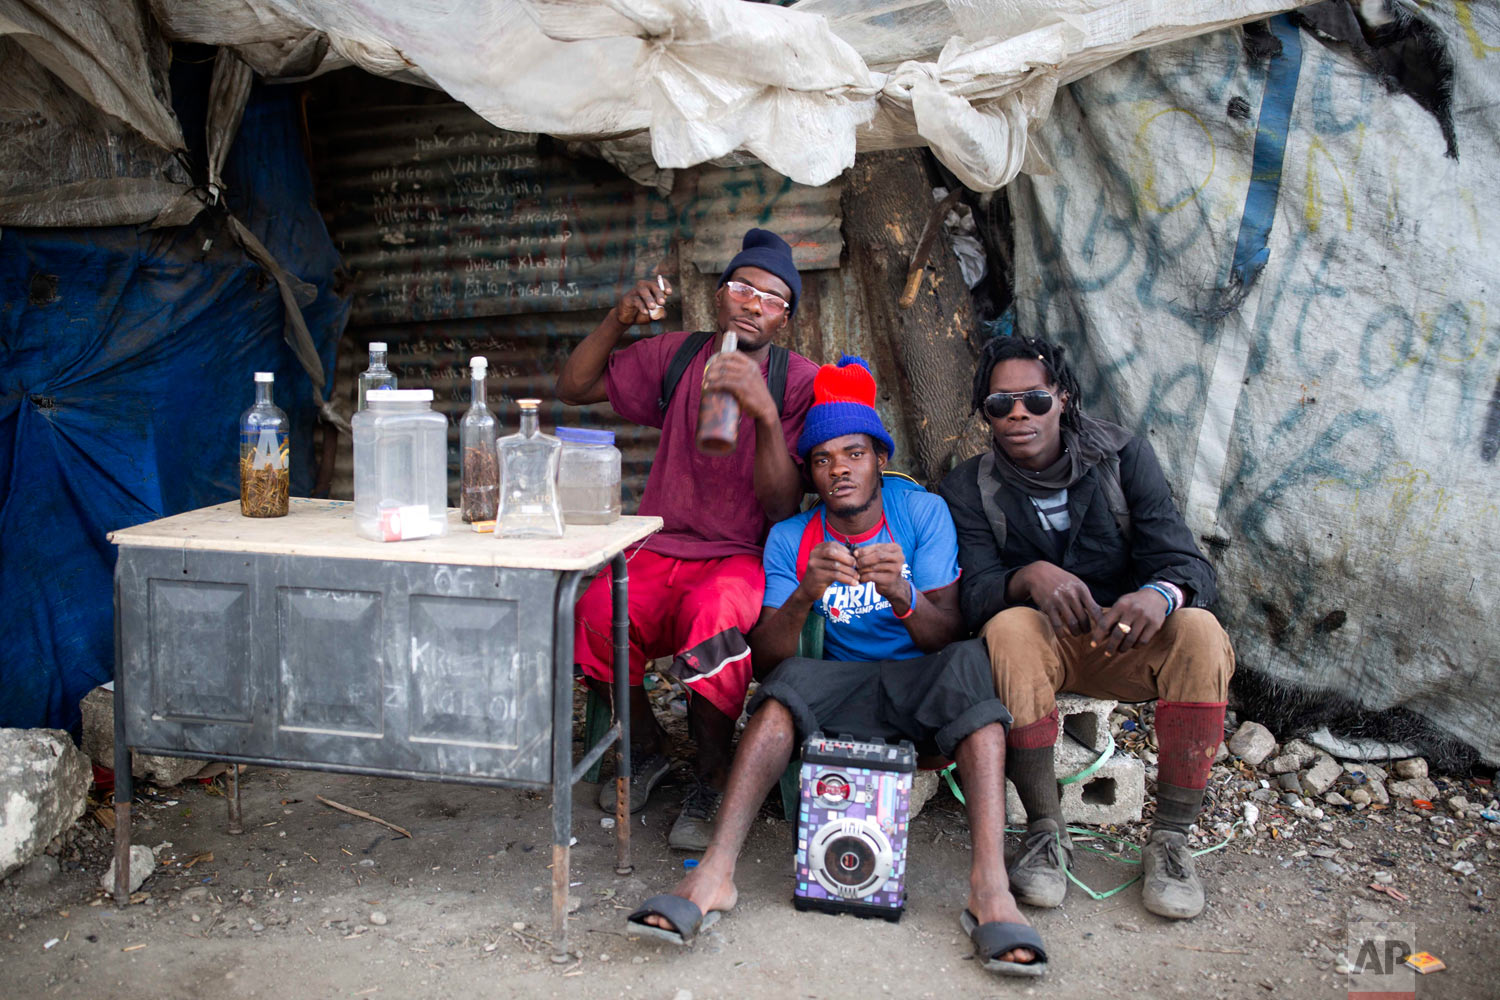 """Trash scavengers rest at a spot coined """"Anba pye bwa"""" in Creole, or """"Under the tree"""" after a long day at the dump. Aug. 30, 2018. (AP Photo/Dieu Nalio Chery)"""